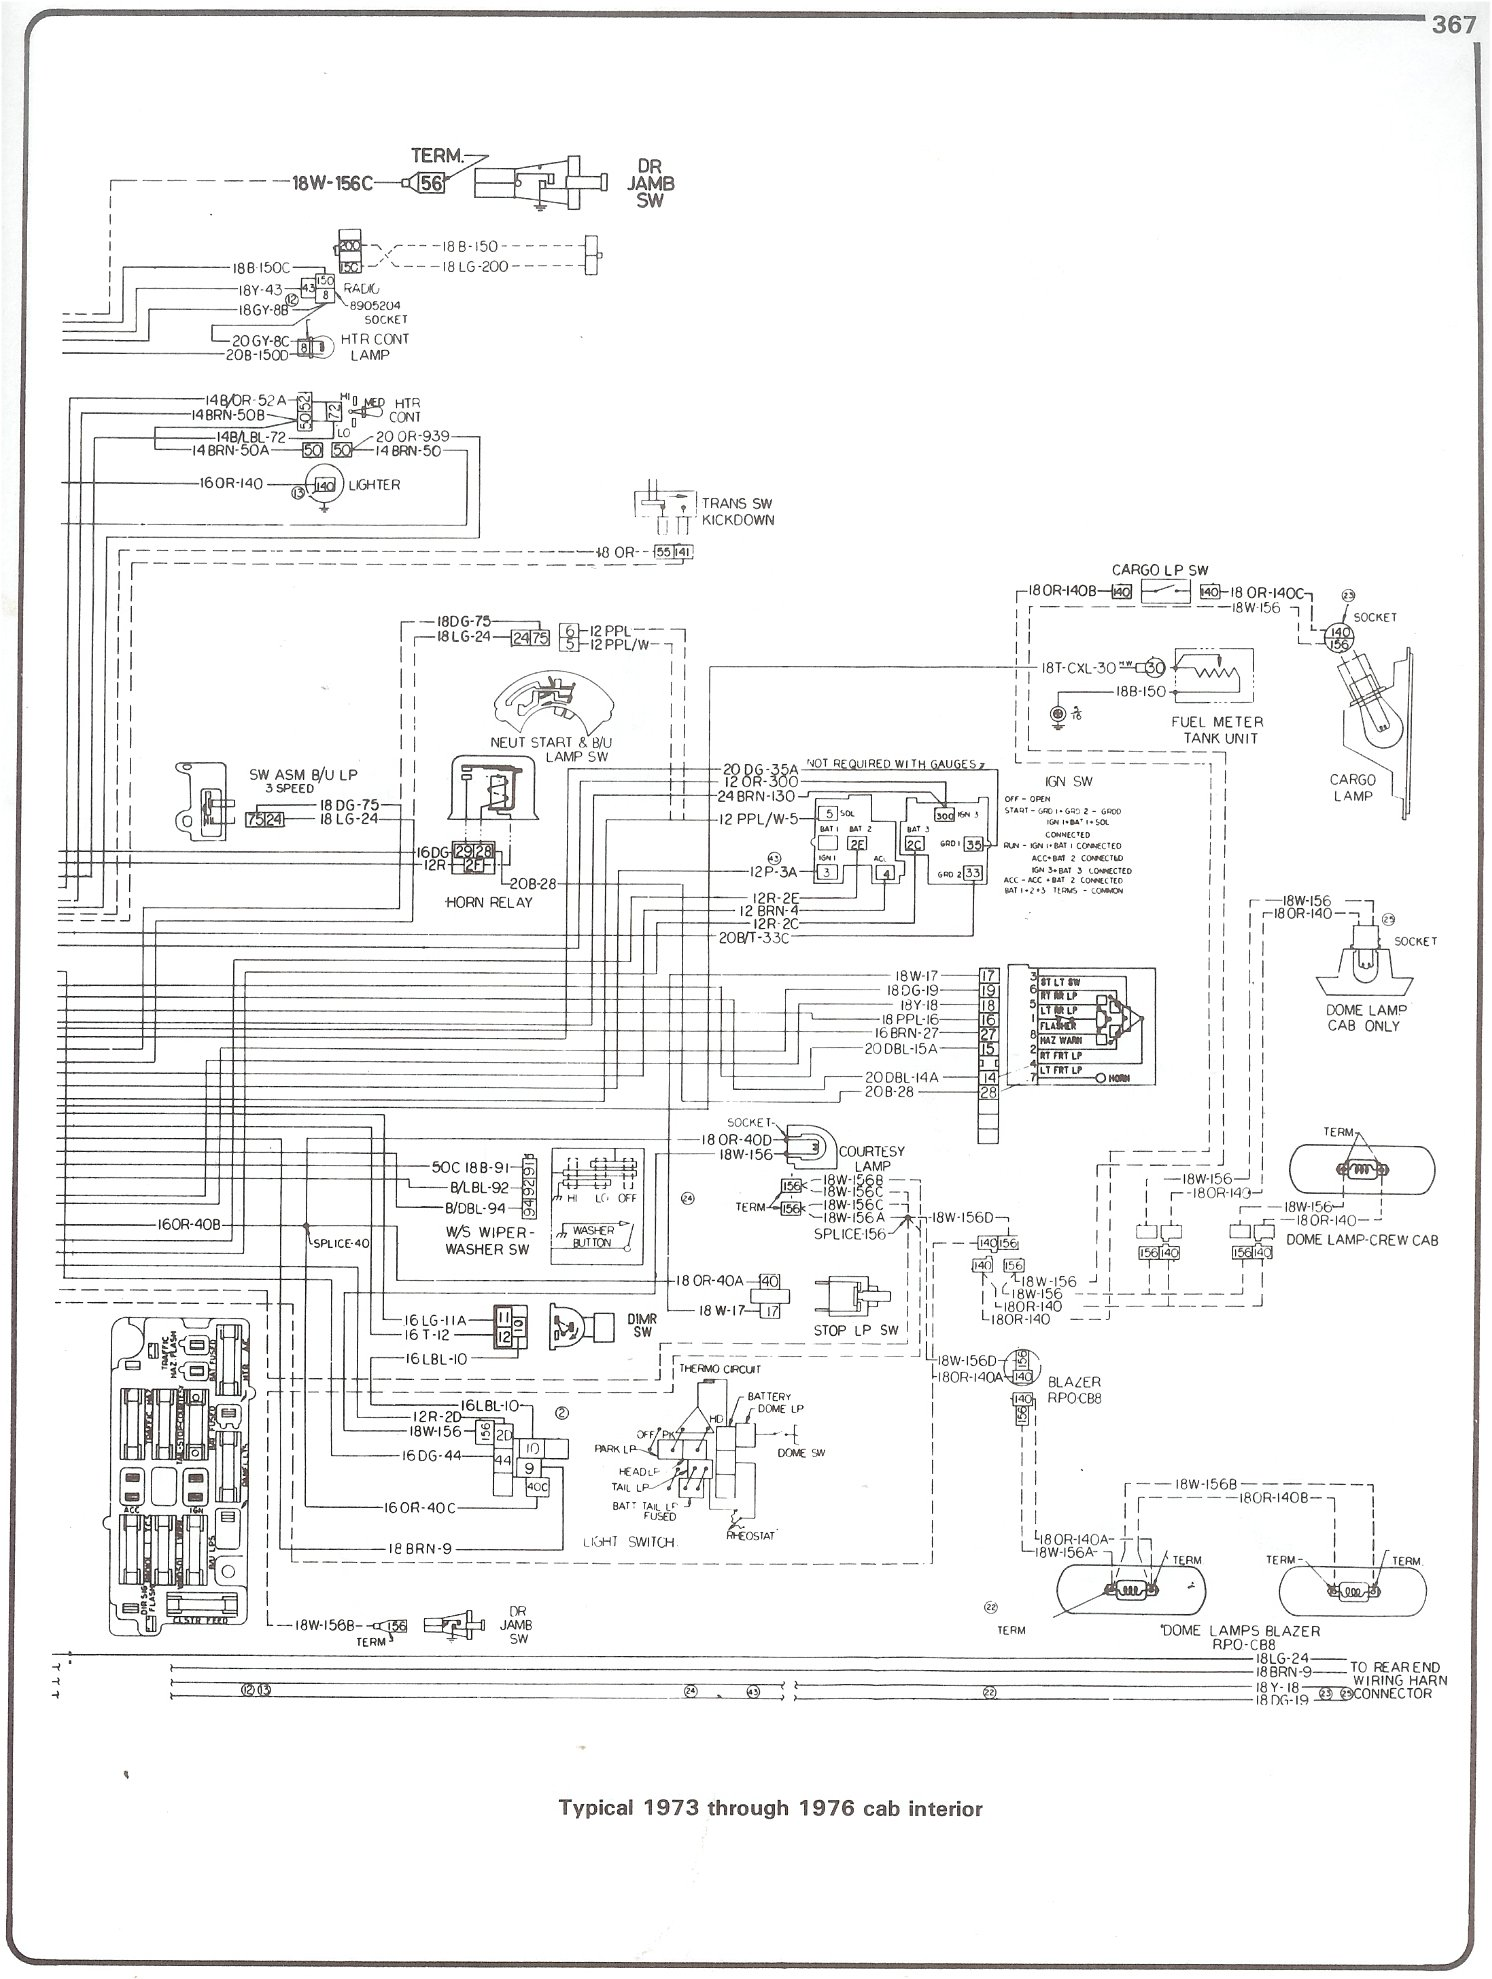 73 76_cab_inter complete 73 87 wiring diagrams 1977 chevy truck wiring diagram at honlapkeszites.co